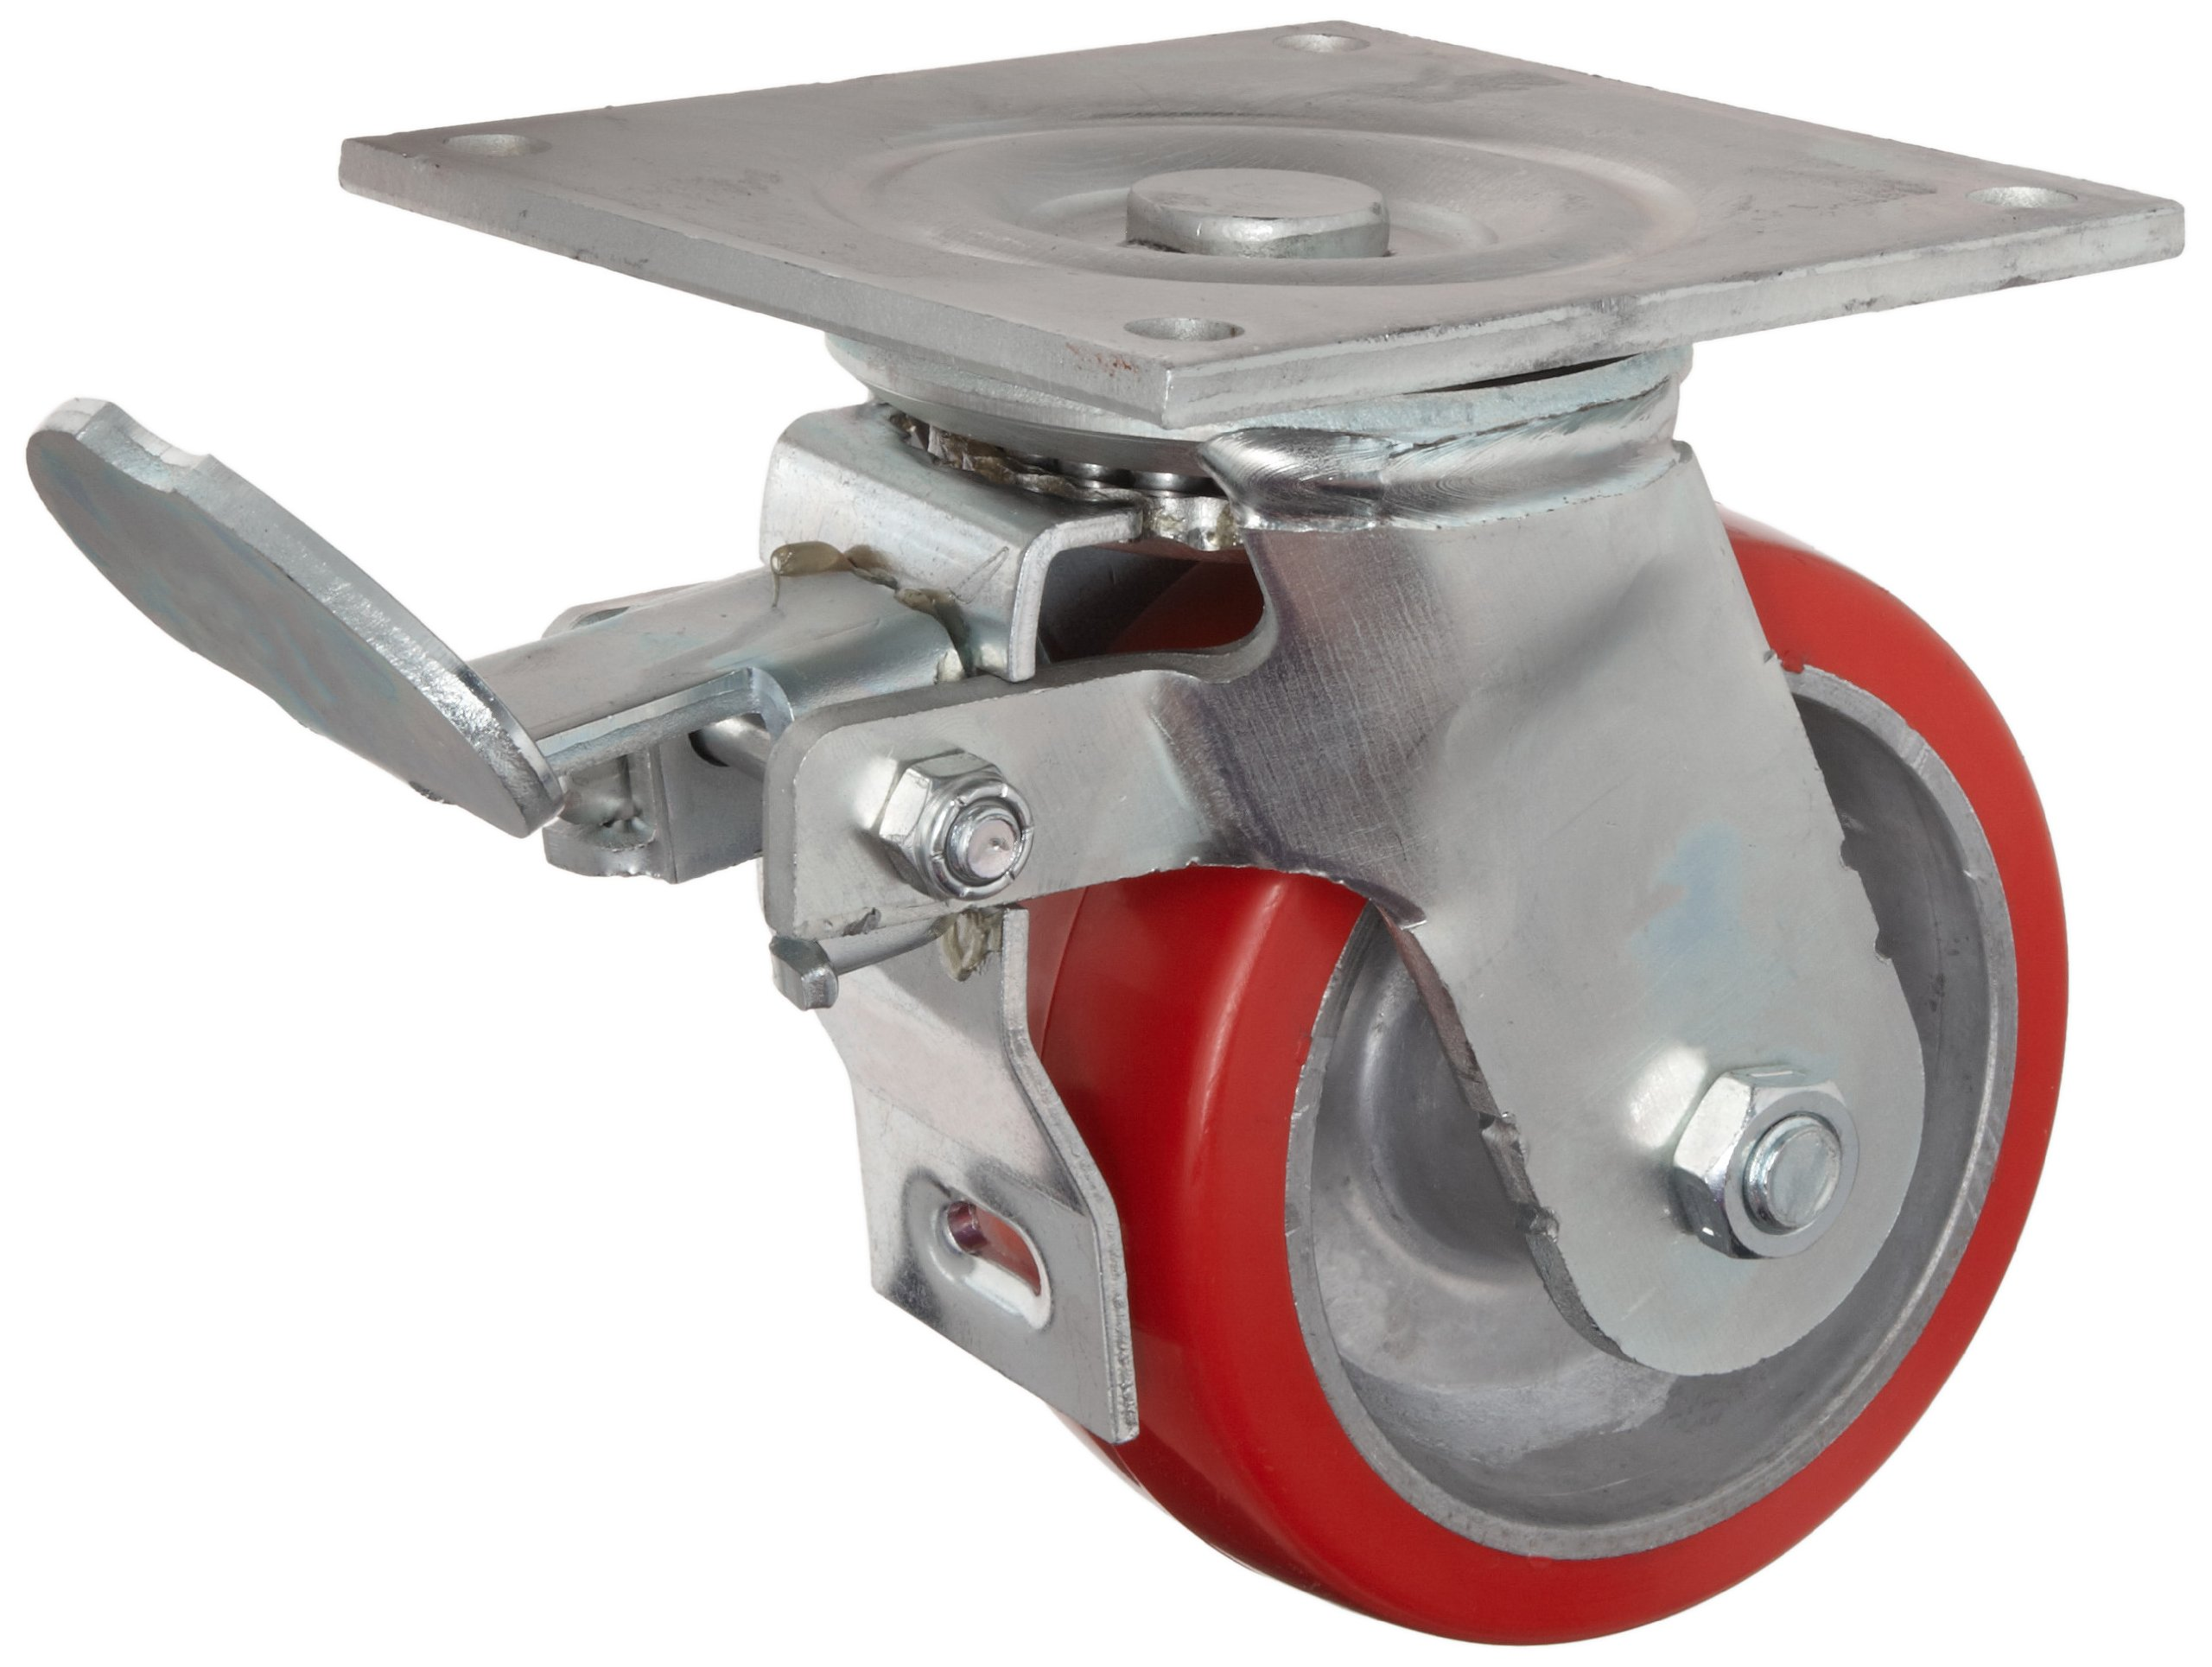 E.R. Wagner Plate Caster, Swivel with Total-Lock Brake, Polyurethane on Aluminum Wheel, Roller Bearing, 1200 lbs Capacity, 6'' Wheel Dia, 2'' Wheel Width, 7-1/2'' Mount Height, 4-1/2'' Plate Length, 4'' Plate Width by ER Wagner